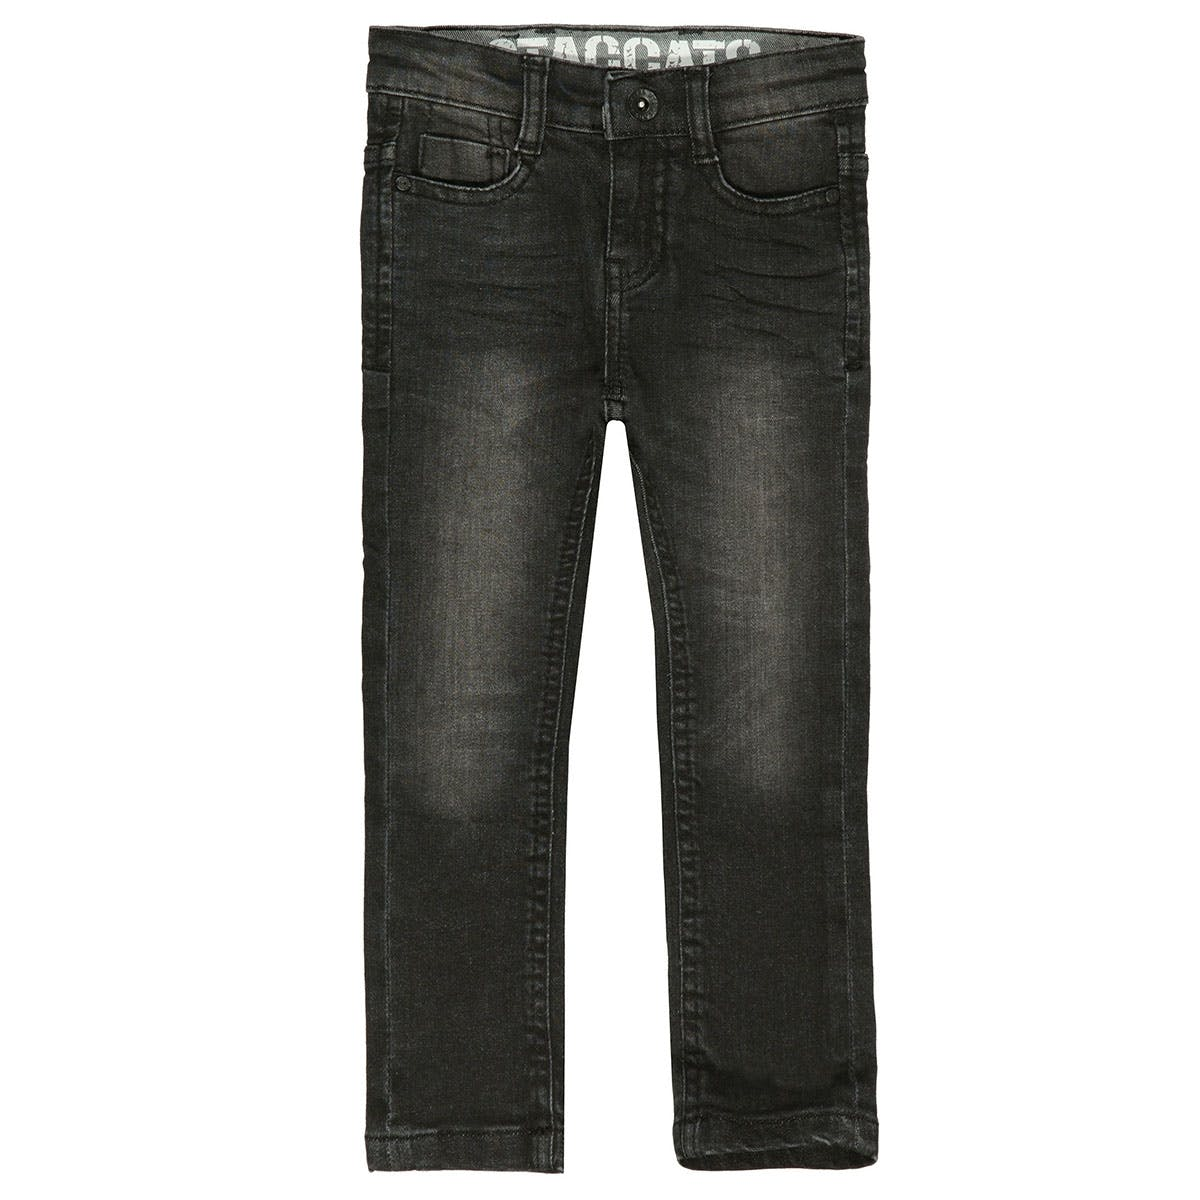 Jungen Skinny Jeans Slim Fit - BEN - Black Denim